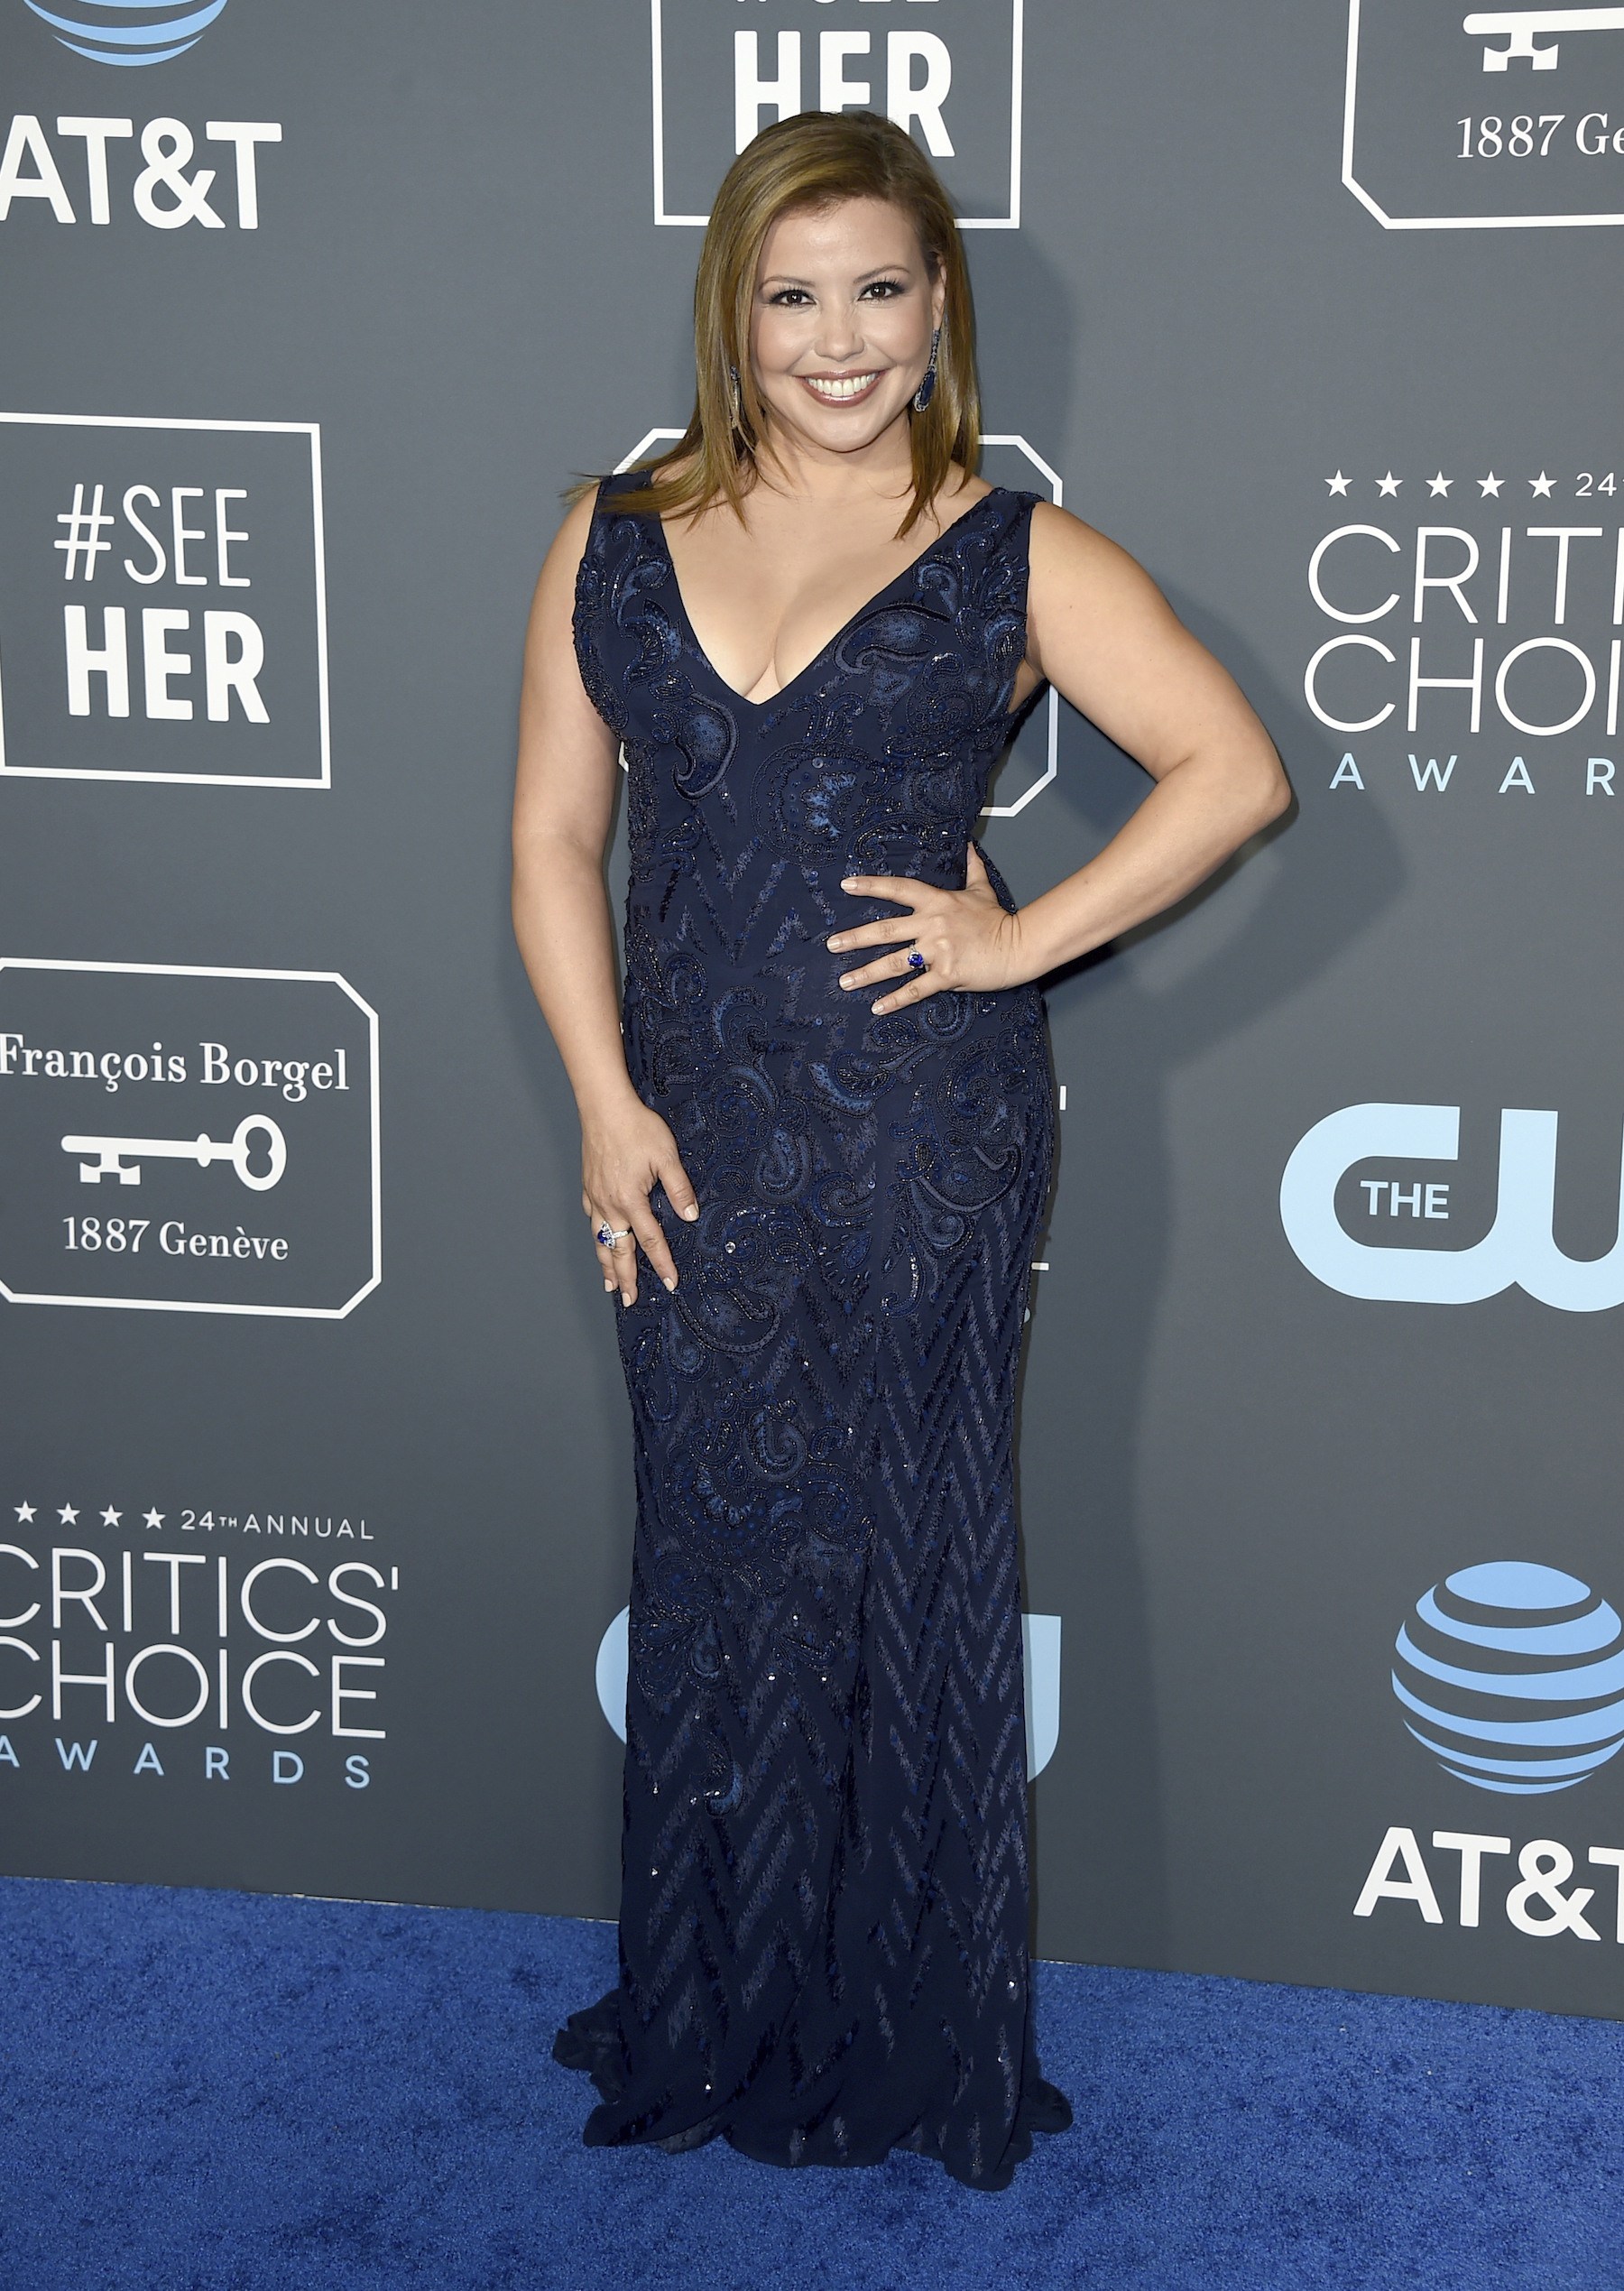 <div class='meta'><div class='origin-logo' data-origin='AP'></div><span class='caption-text' data-credit='Jordan Strauss/Invision/AP'>Justina Machado arrives at the 24th annual Critics' Choice Awards on Sunday, Jan. 13, 2019, at the Barker Hangar in Santa Monica, Calif.</span></div>